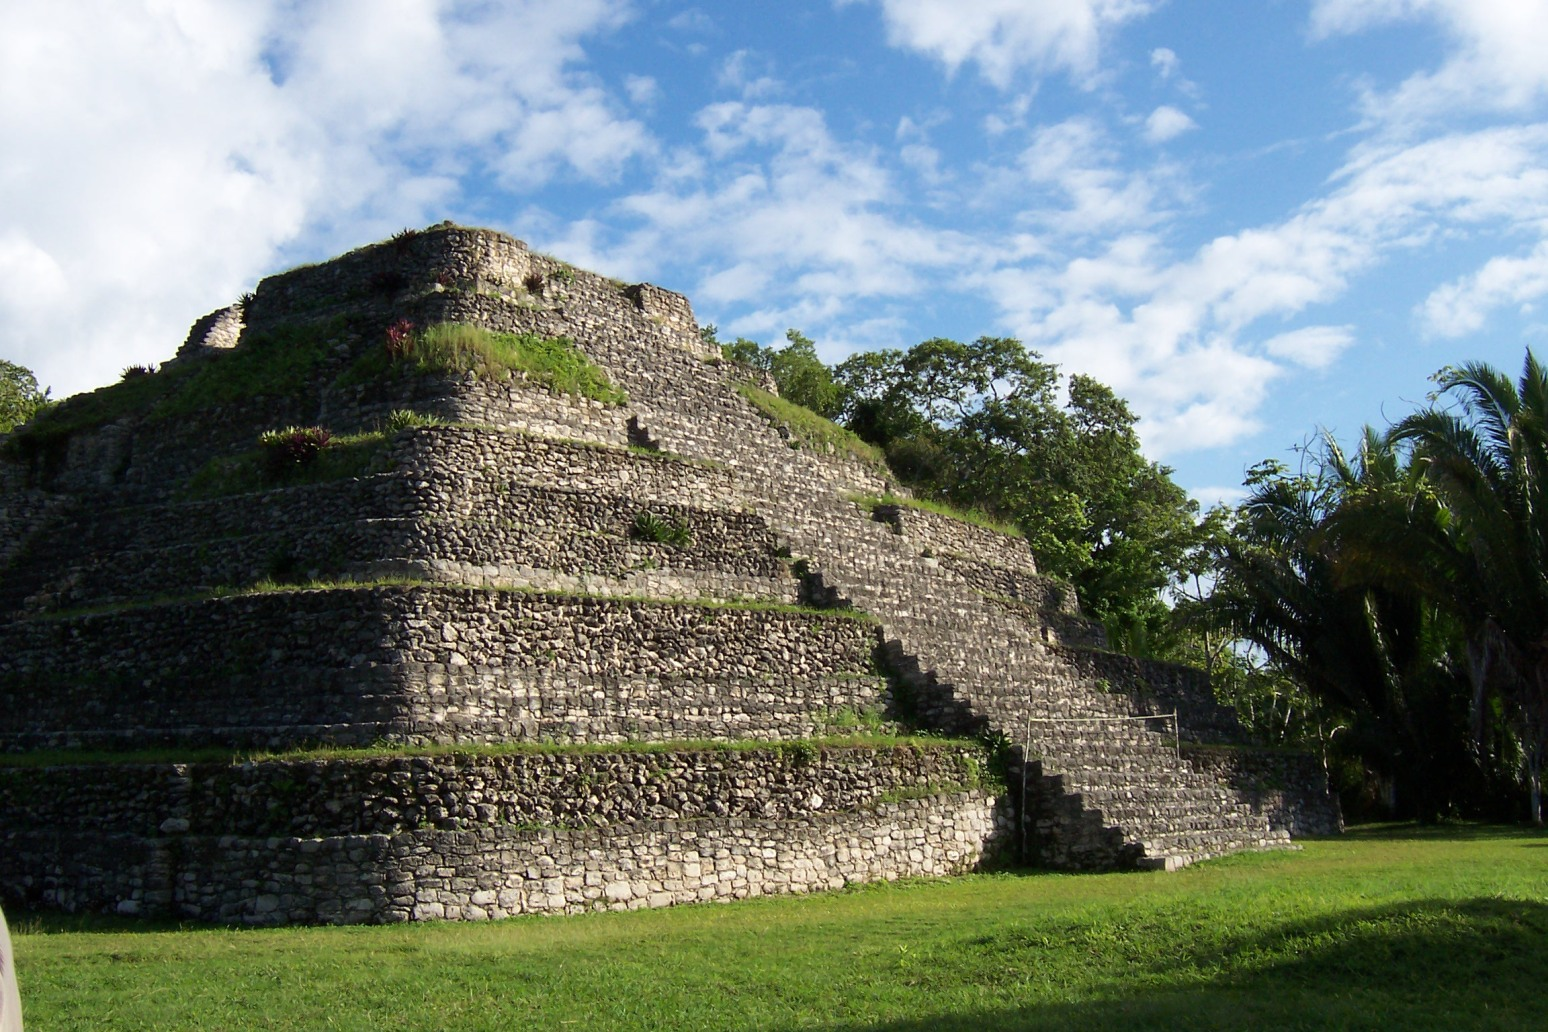 The Maya civilization was a Mesoamerican civilization developed by the Maya peoples and noted for its hieroglyphic scriptthe only known fully developed writing